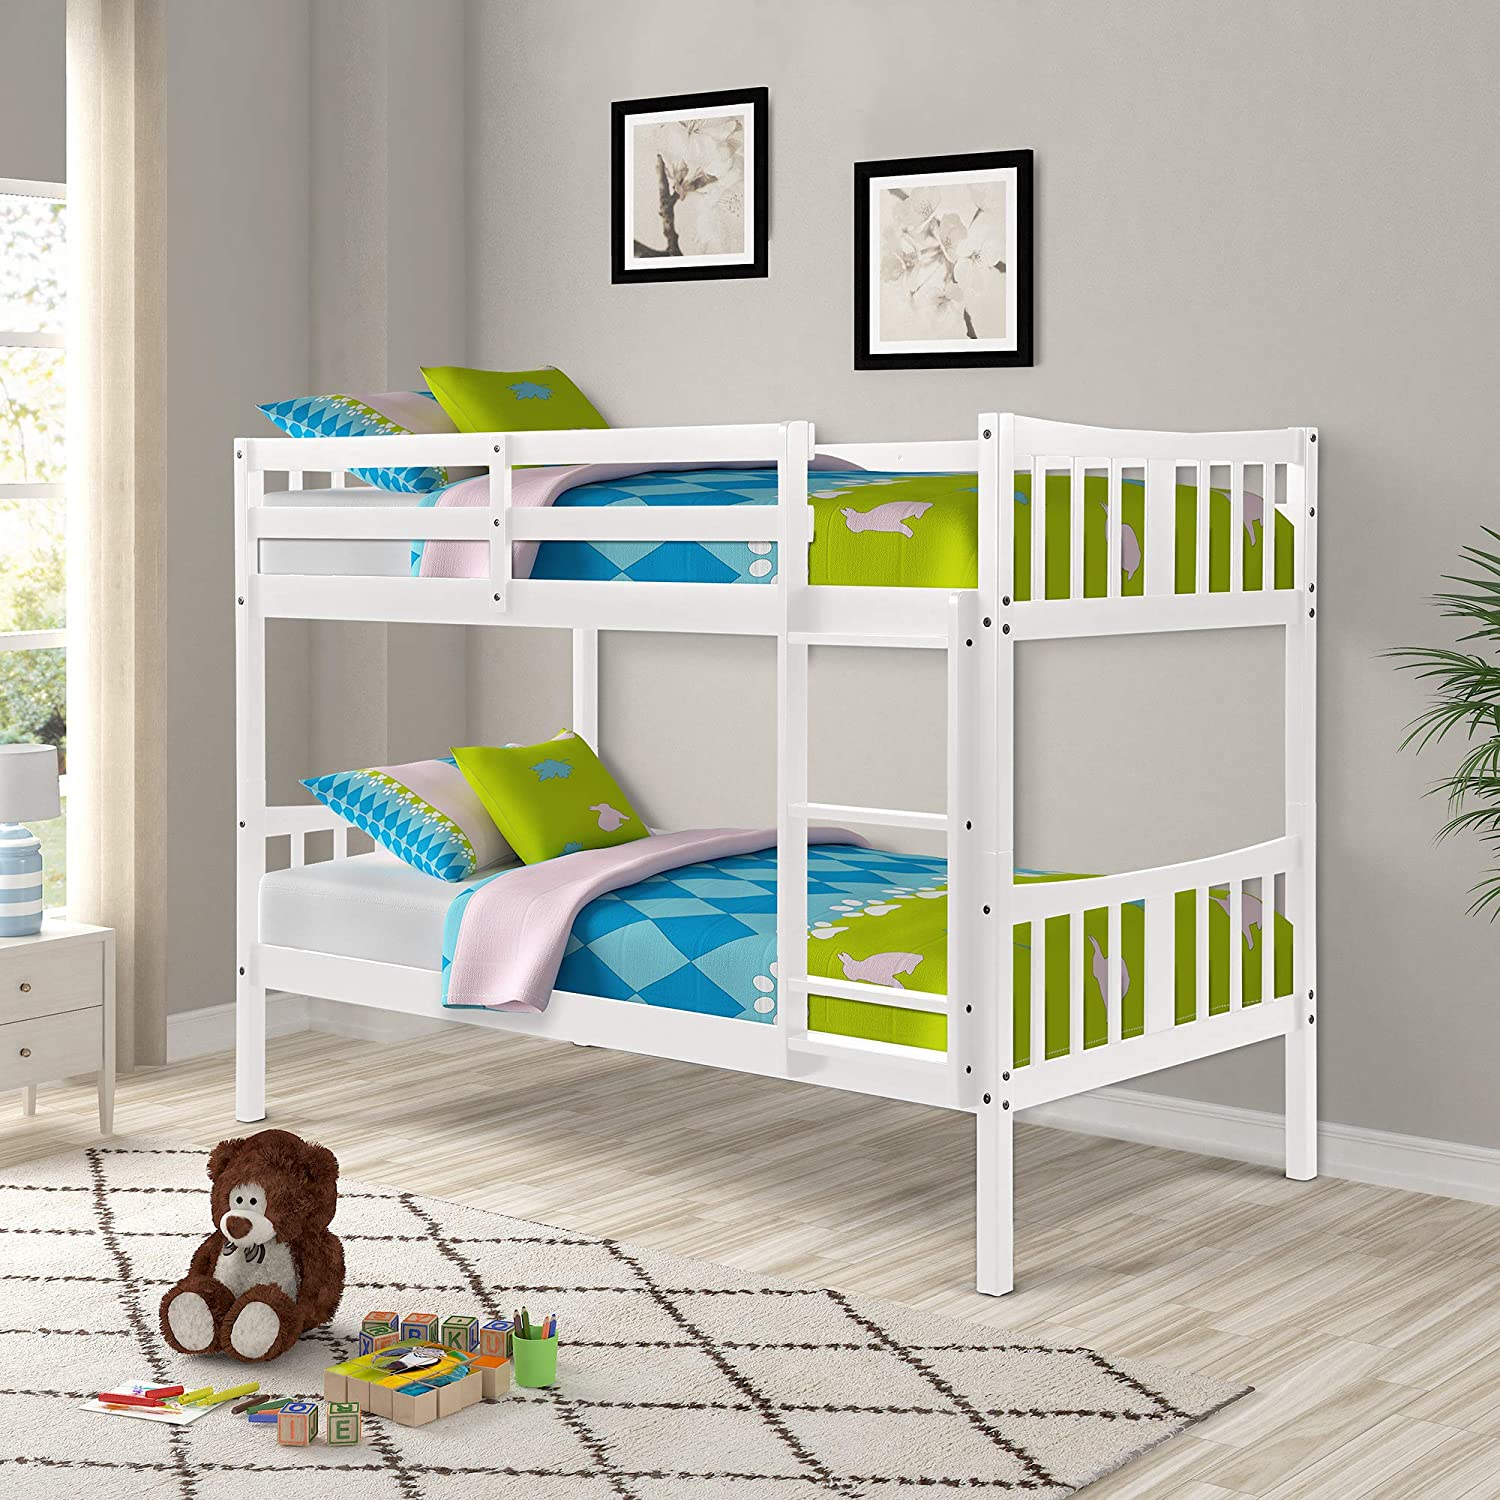 Bunk Bed for Kids, Twin Over Twin Convertible Wooden Bunk Bed Frame with Ladder and Safety Rail, Espresso